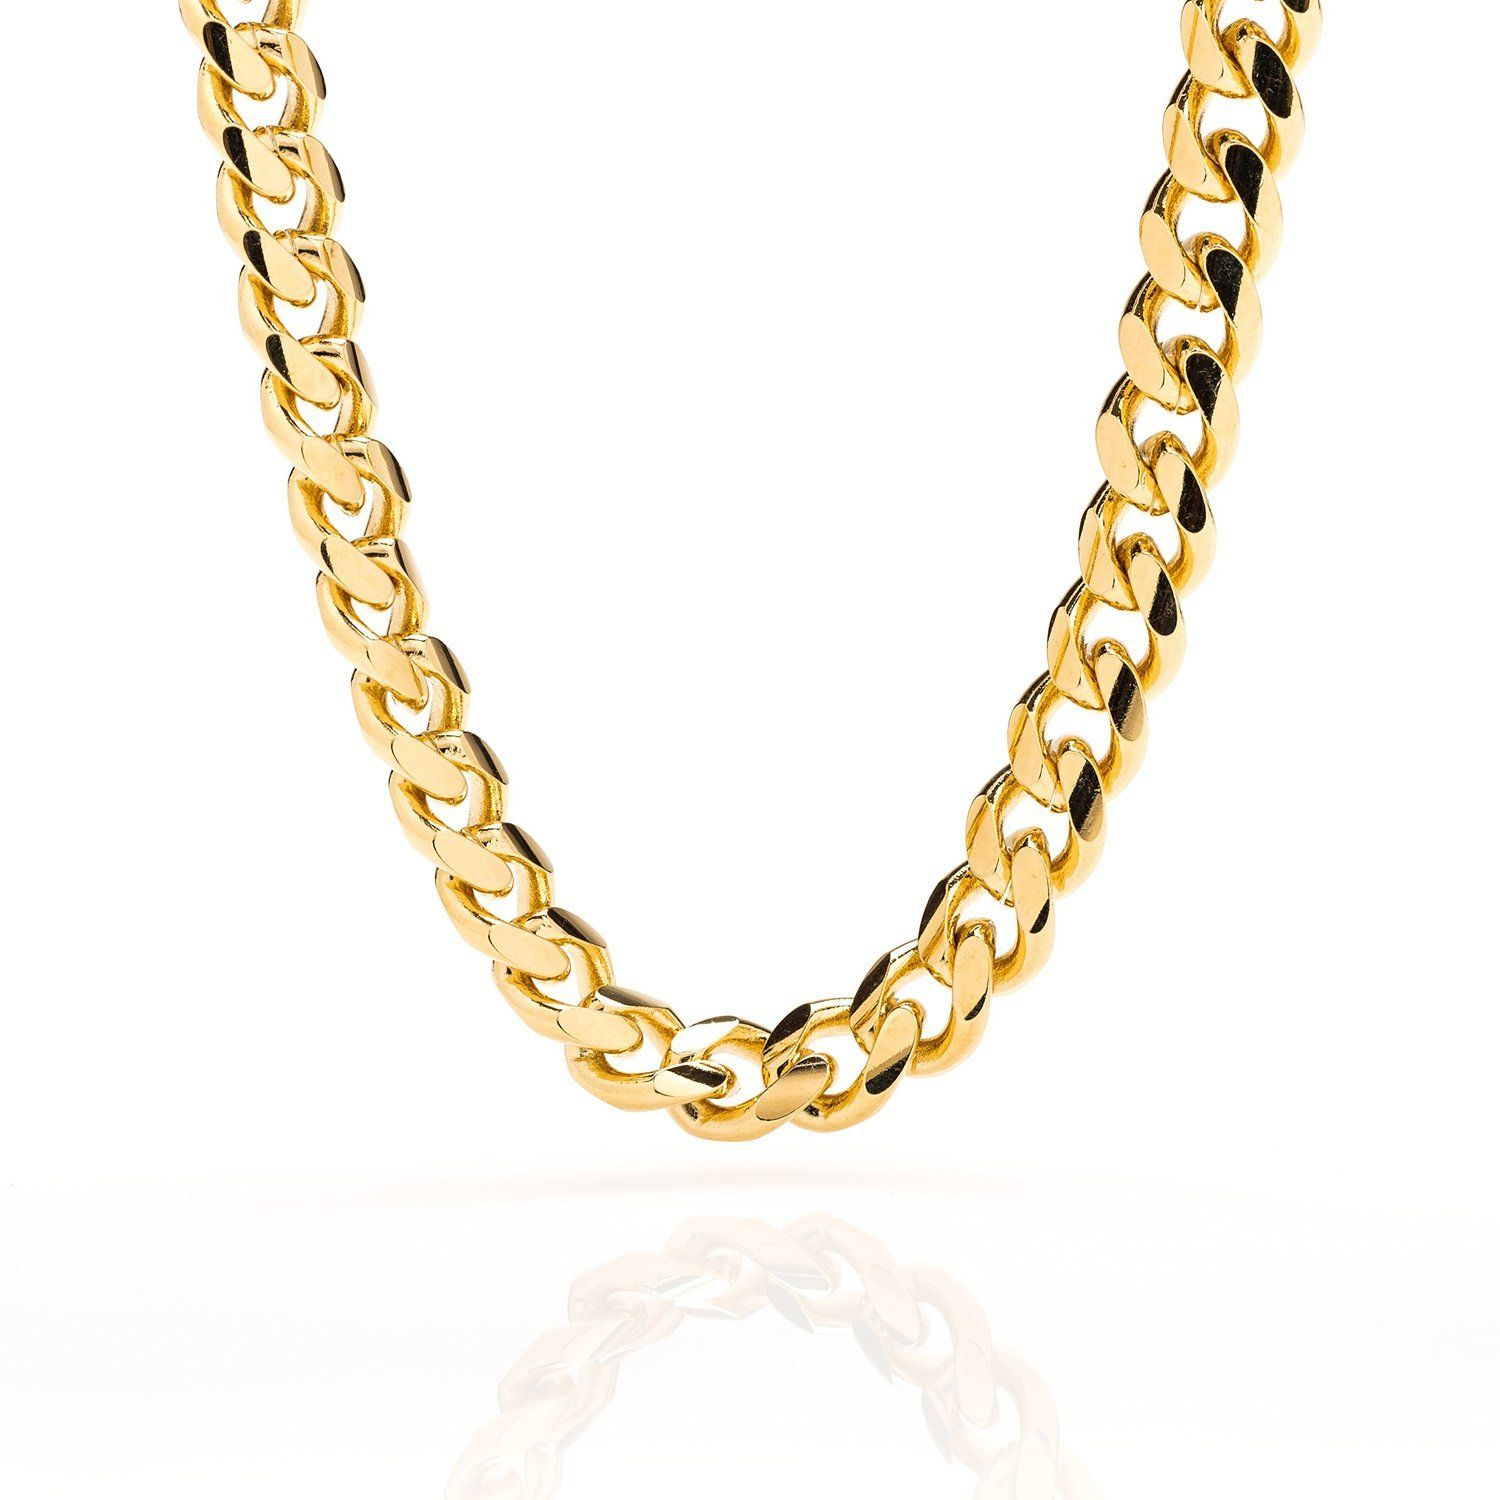 on yellow gold from s chains high item necklaces jewelry for men in quality snake accessories chain plated